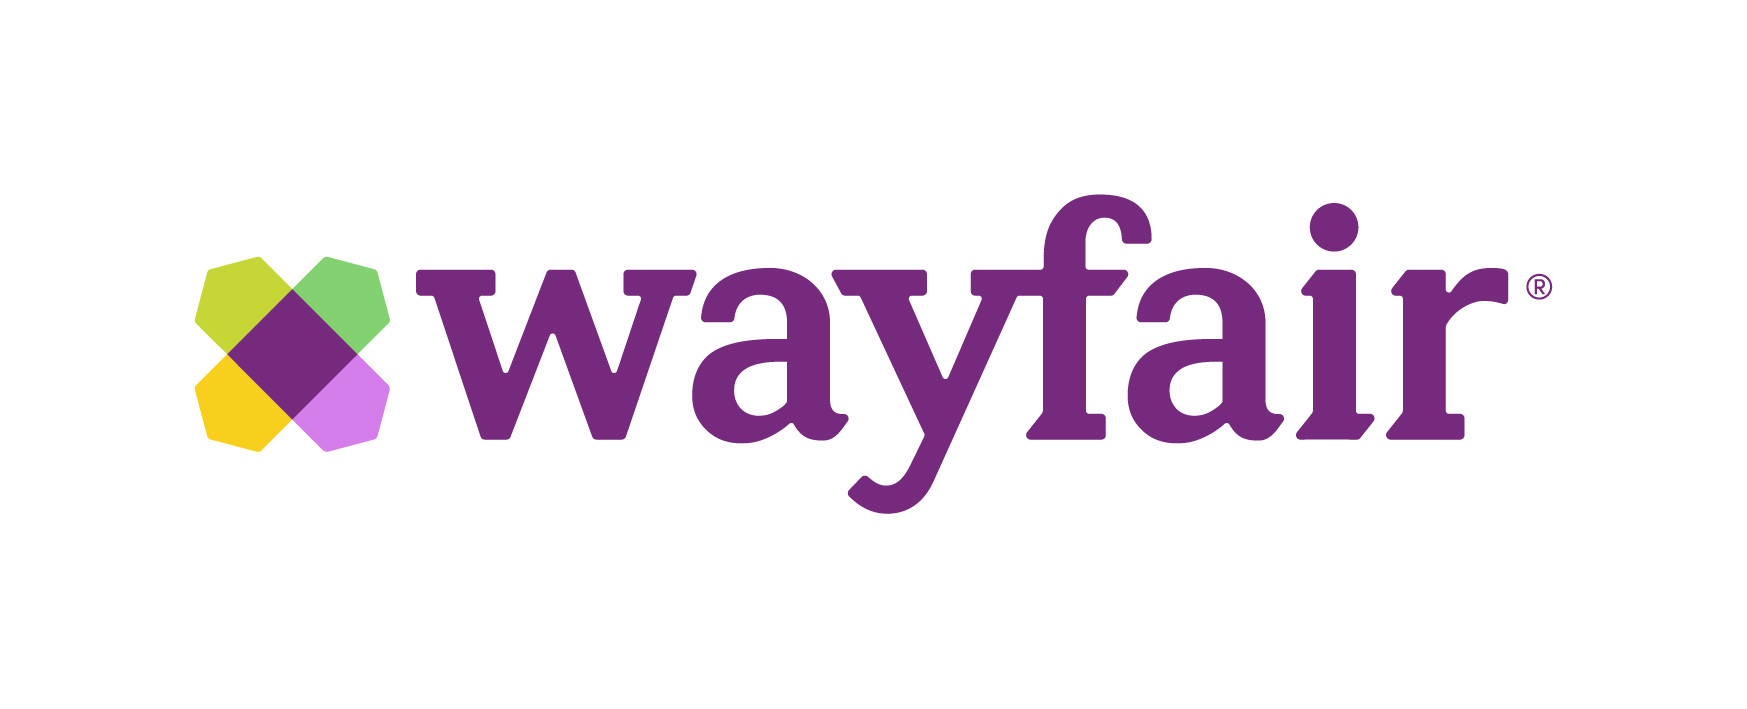 Stupendous Wayfair Partners With Hgtv To Furnish This Years Hgtv Short Links Chair Design For Home Short Linksinfo